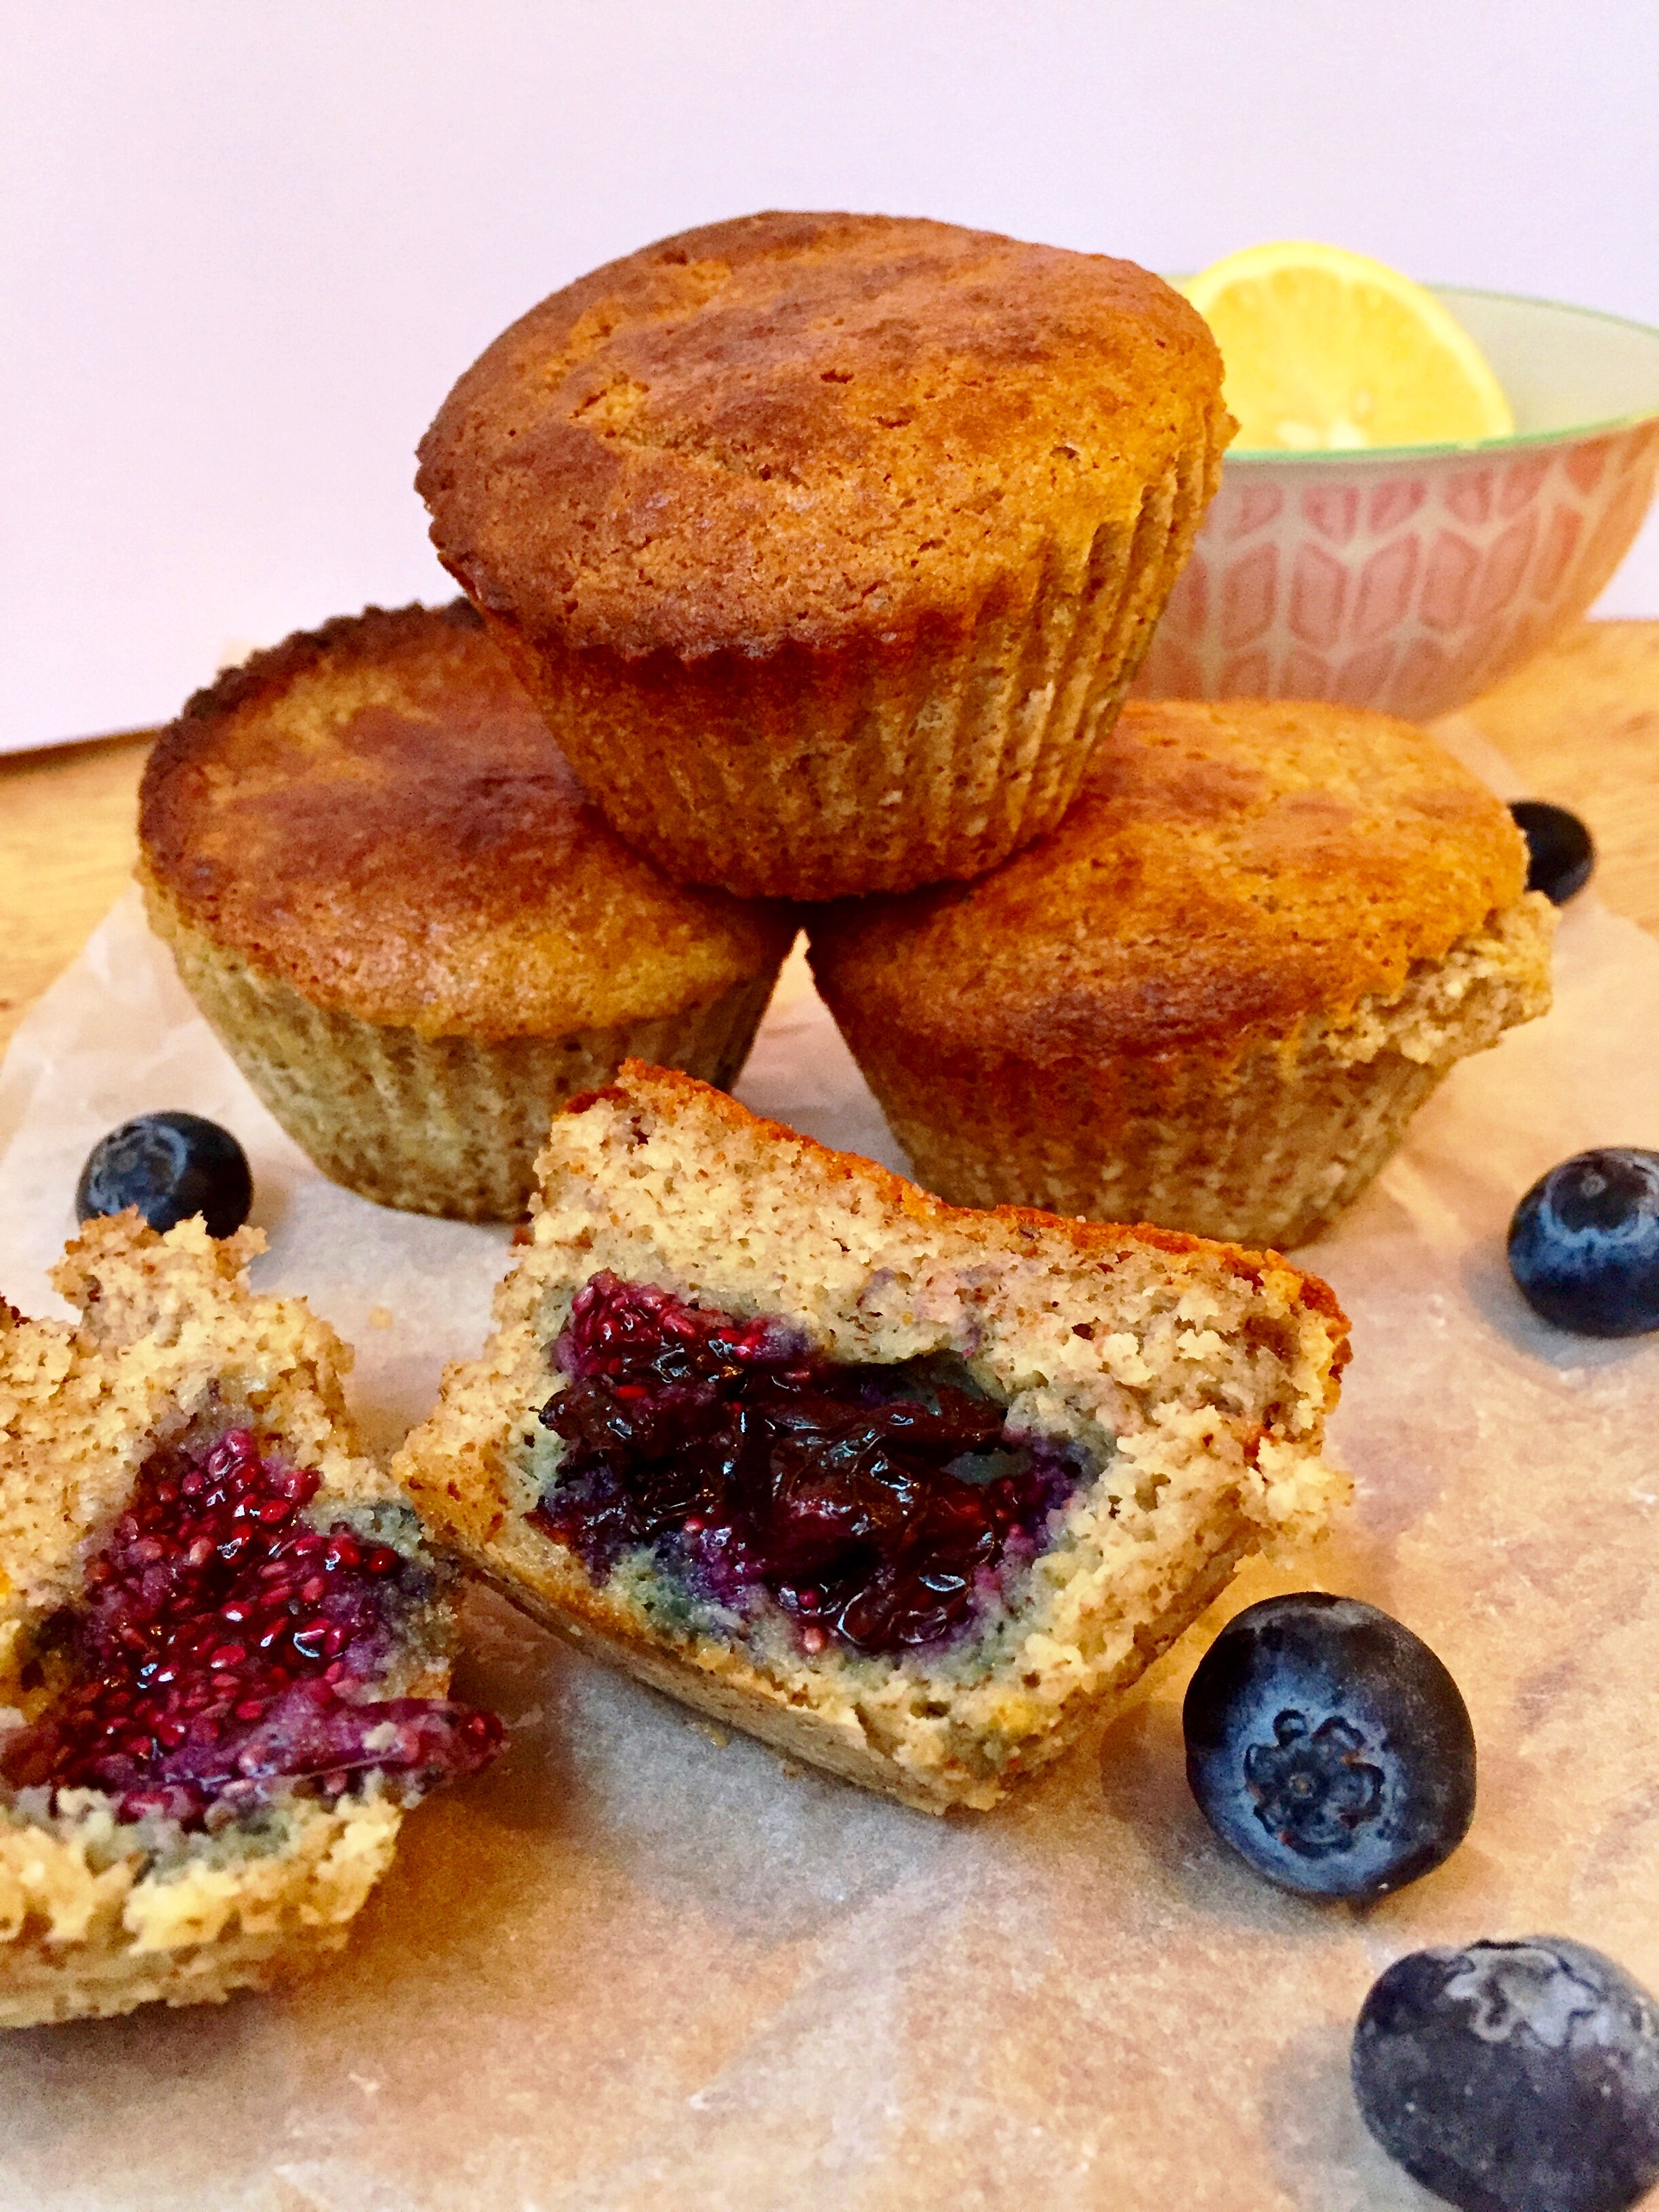 Blueberry and lemon muffins  from the blog. What do I do with a whole batch?!